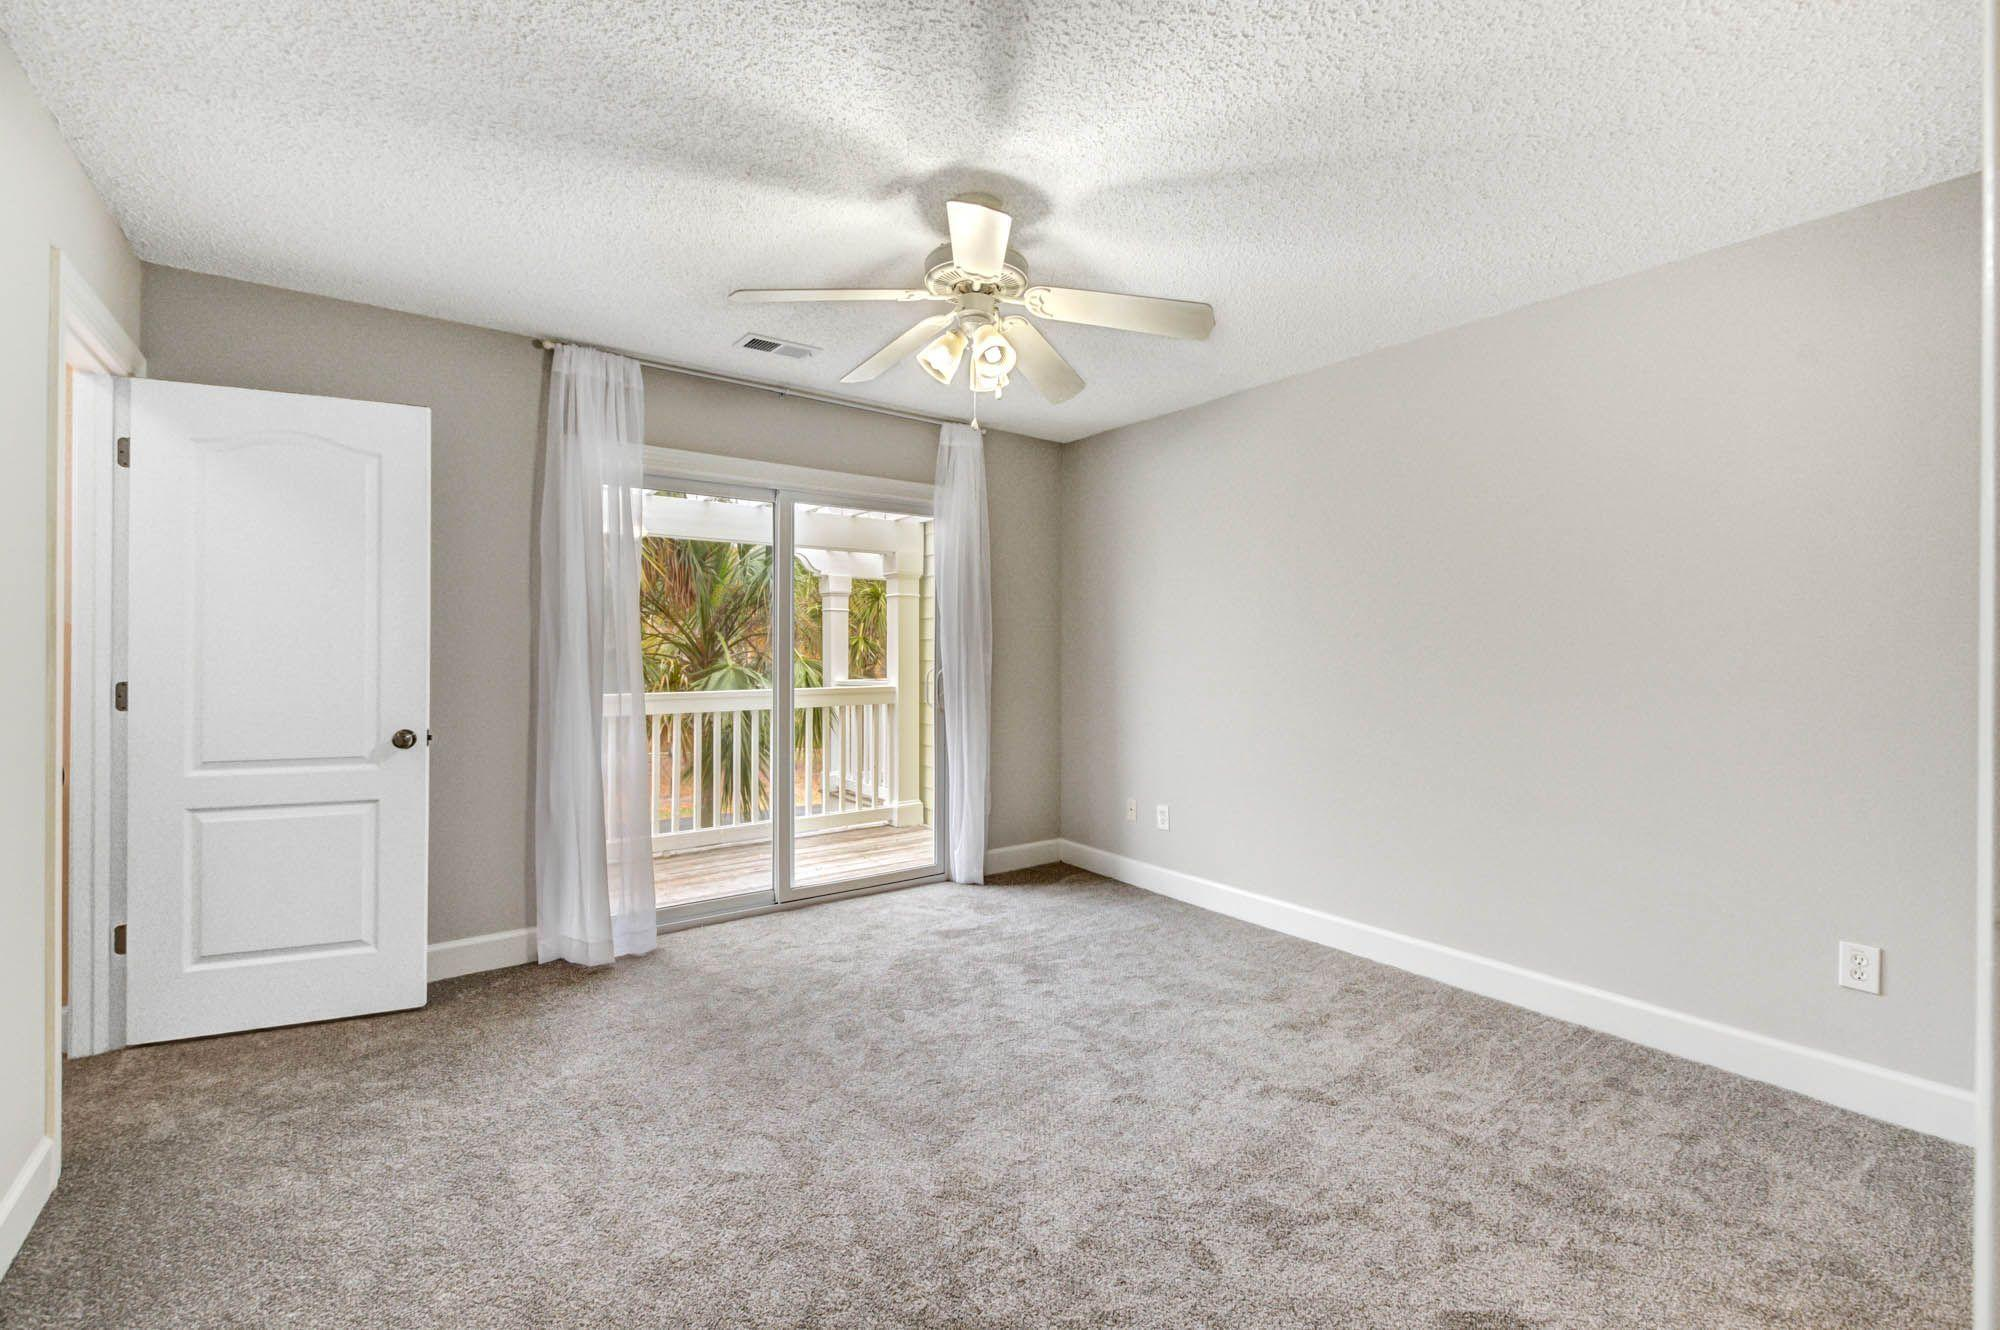 Whitney Lake Condos For Sale - 2926 Sugarberry, Johns Island, SC - 14